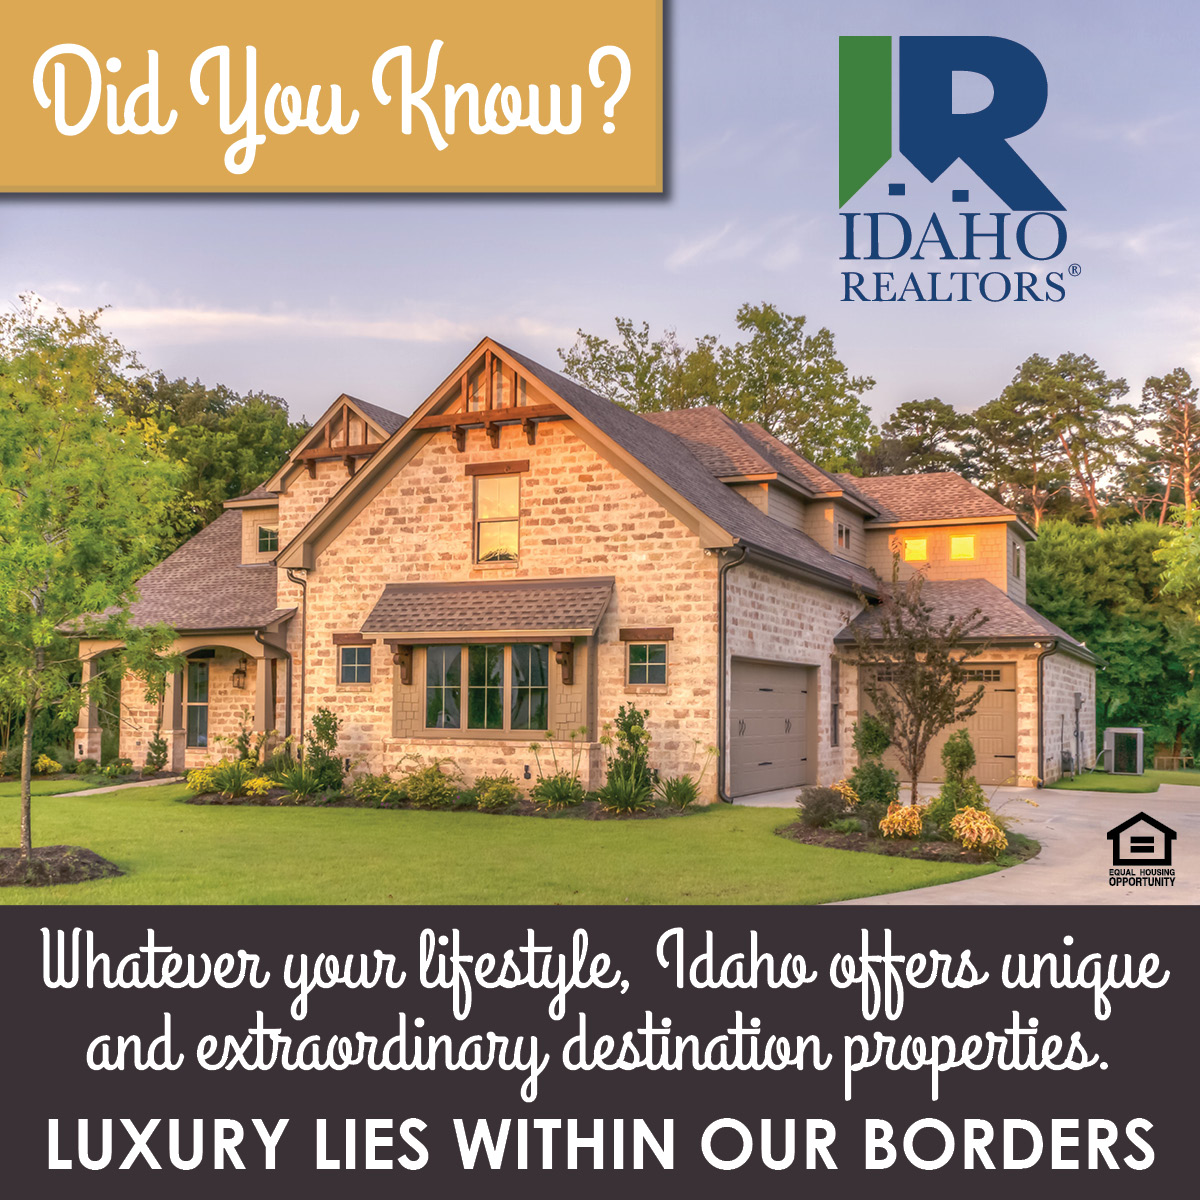 Luxury Within Idaho's Borders